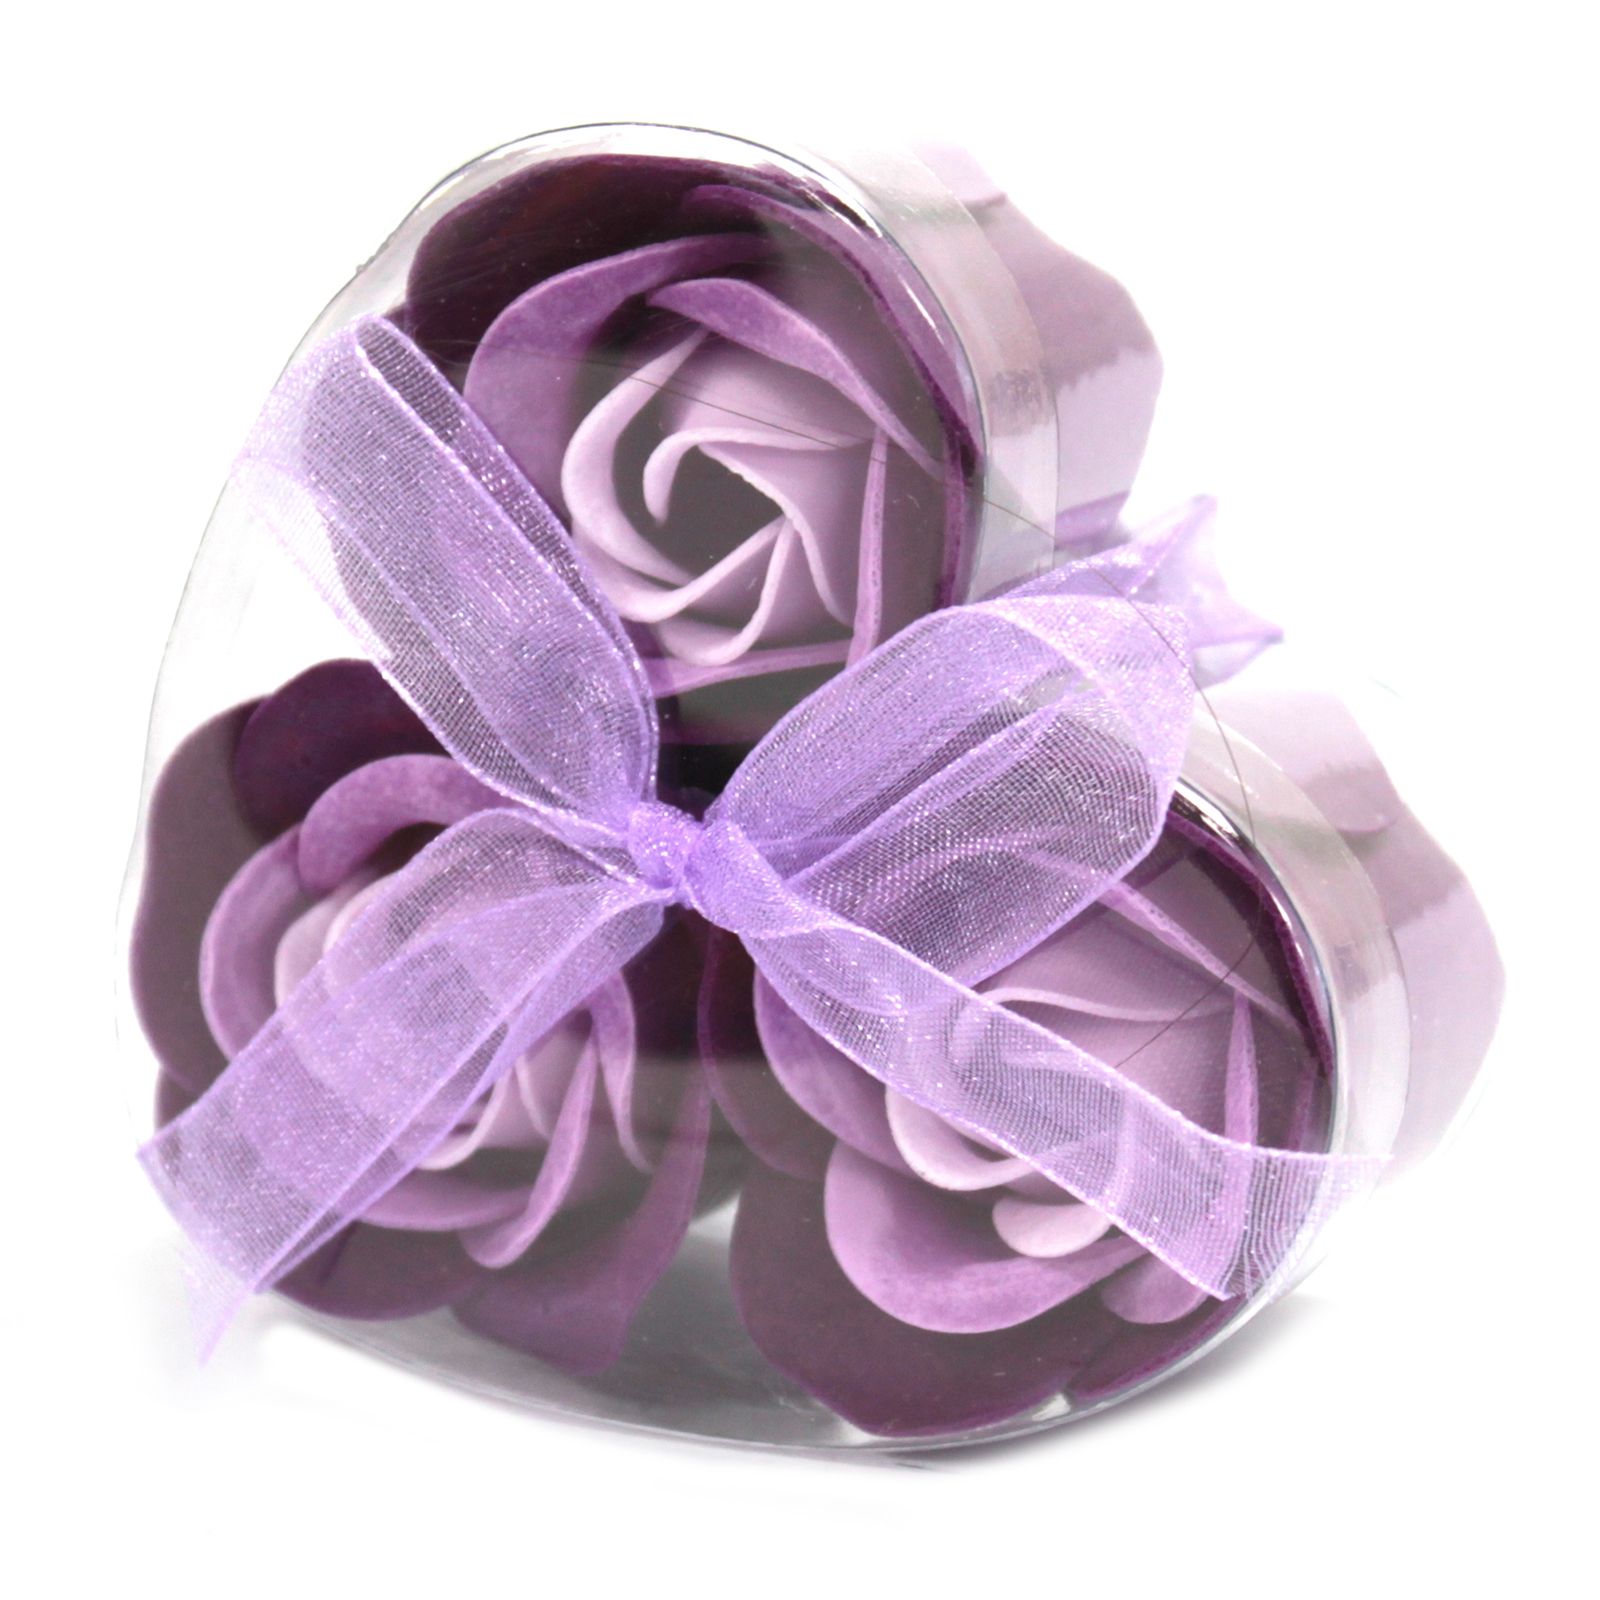 1x Set of 3 Soap Flower Heart Box - Lavender Roses